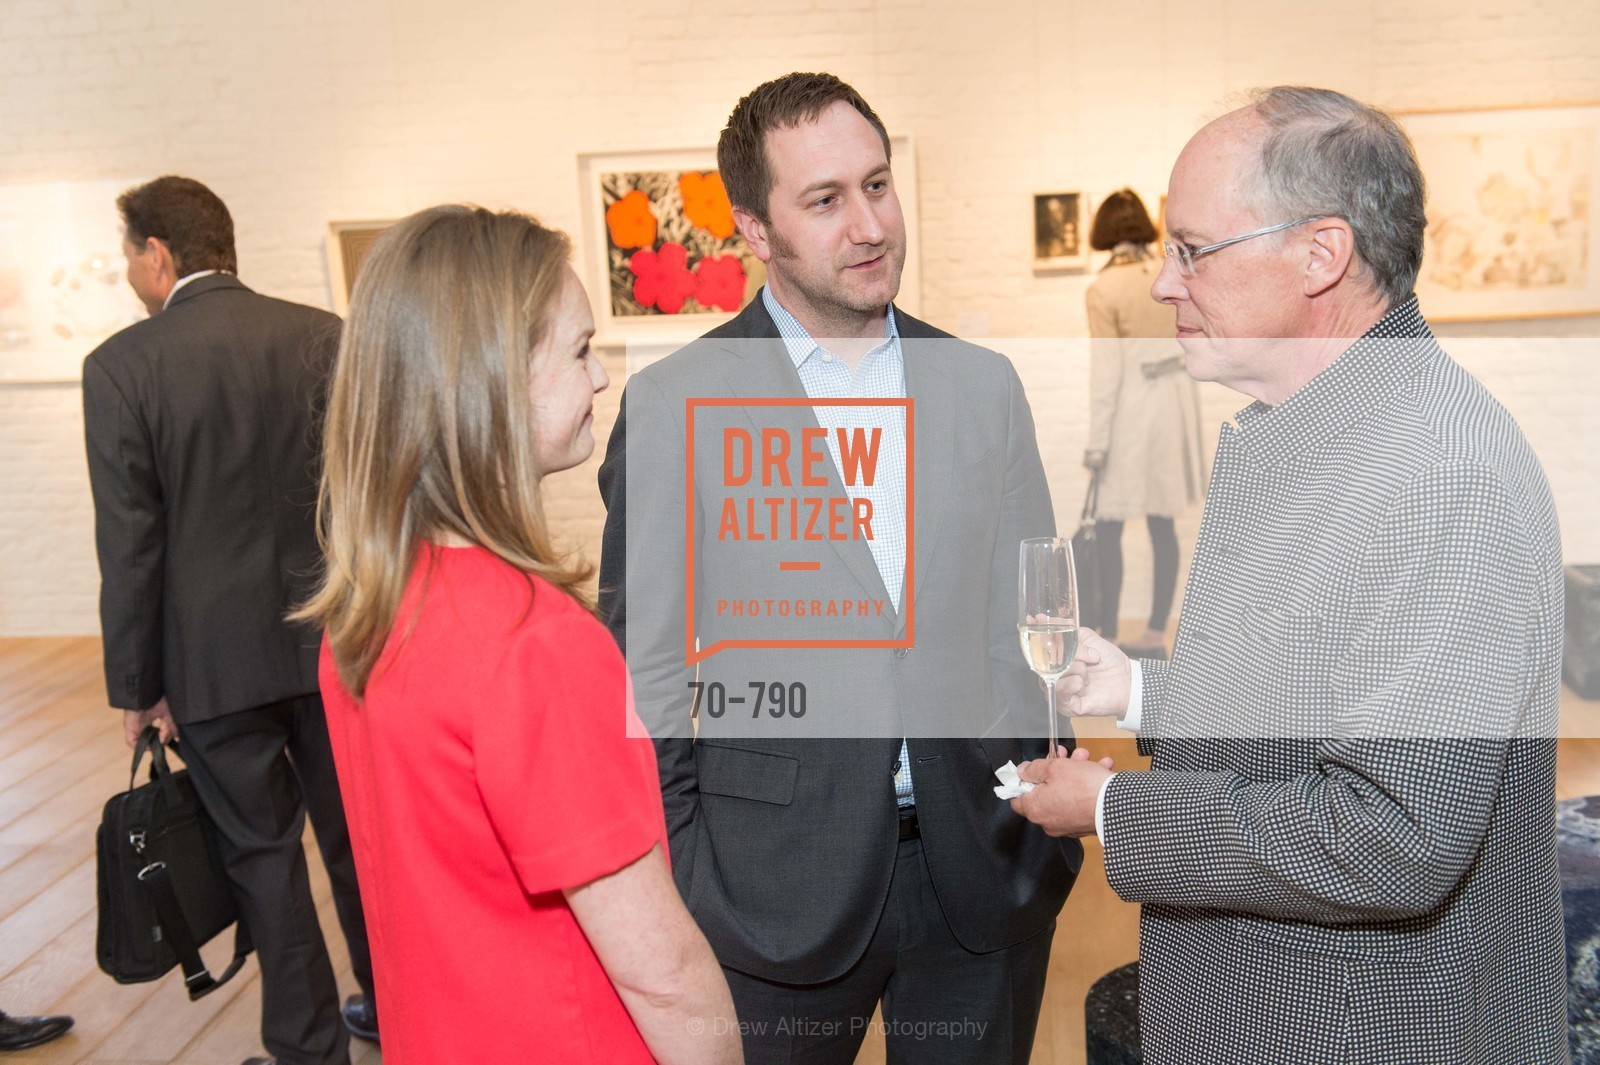 Charlie Adamski, Jonathan Laib, Charles Desmarais, Post War and Contemporary Preview at HEDGE GALLERY, US, April 15th, 2015,Drew Altizer, Drew Altizer Photography, full-service agency, private events, San Francisco photographer, photographer california